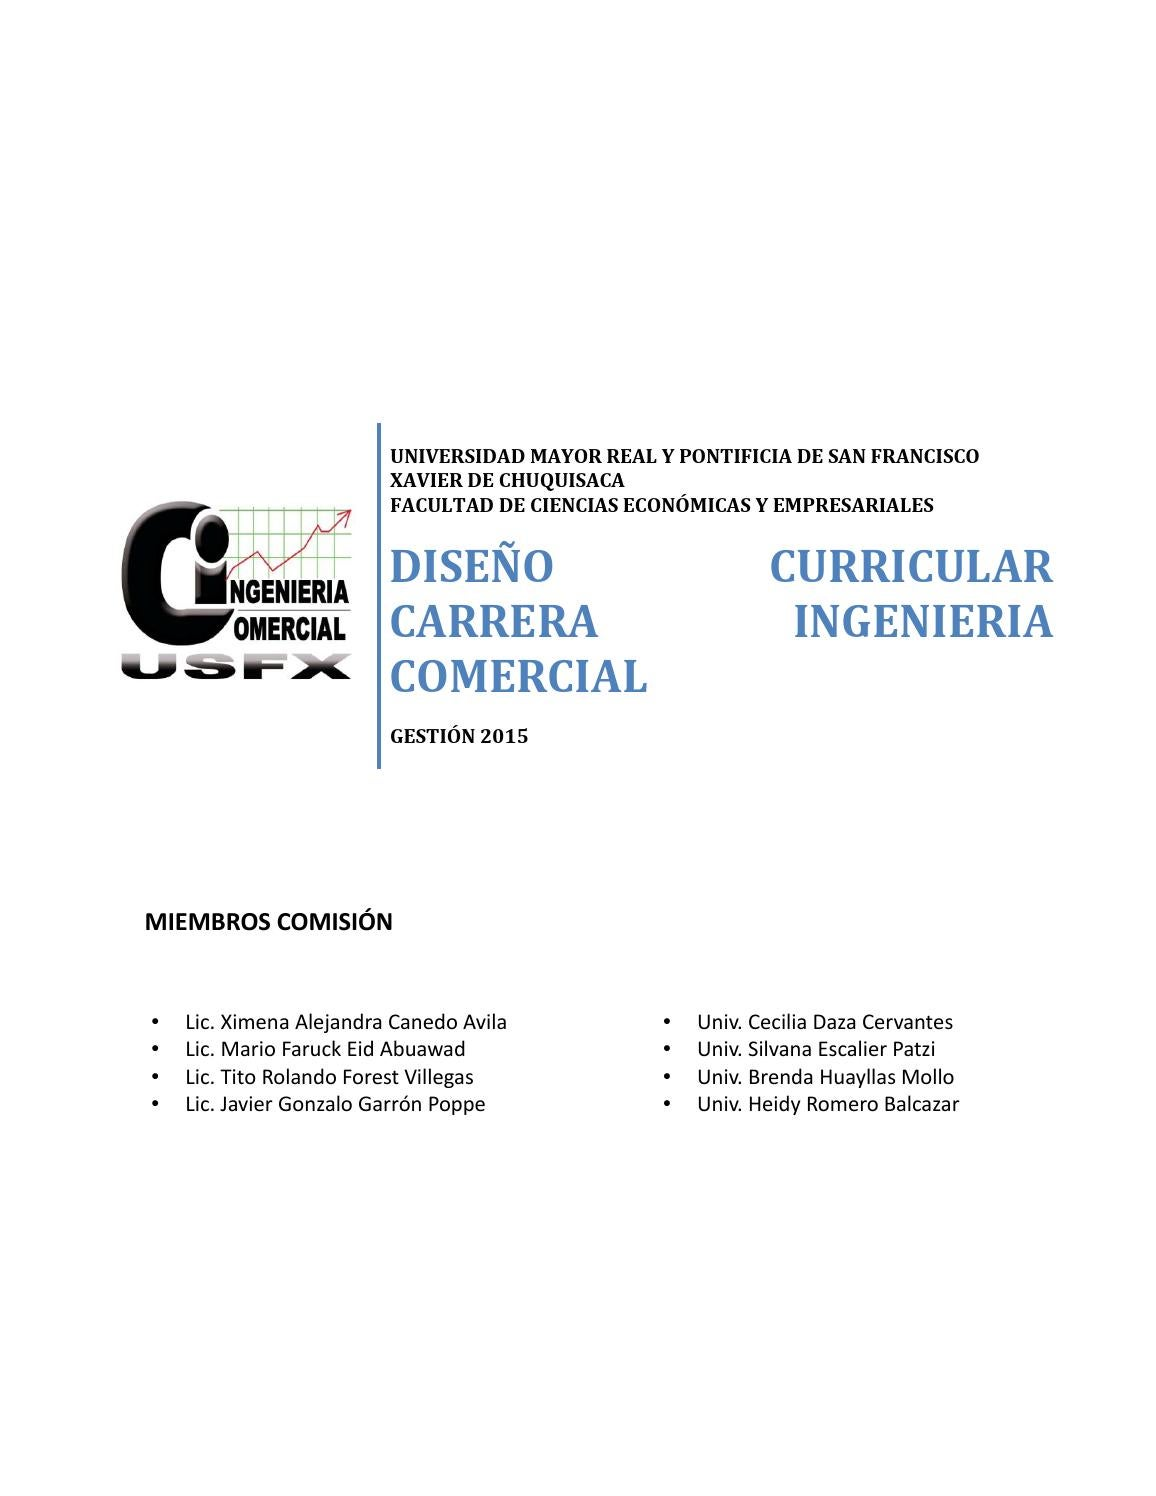 Diseño curricular ing comercial by tannyk - issuu